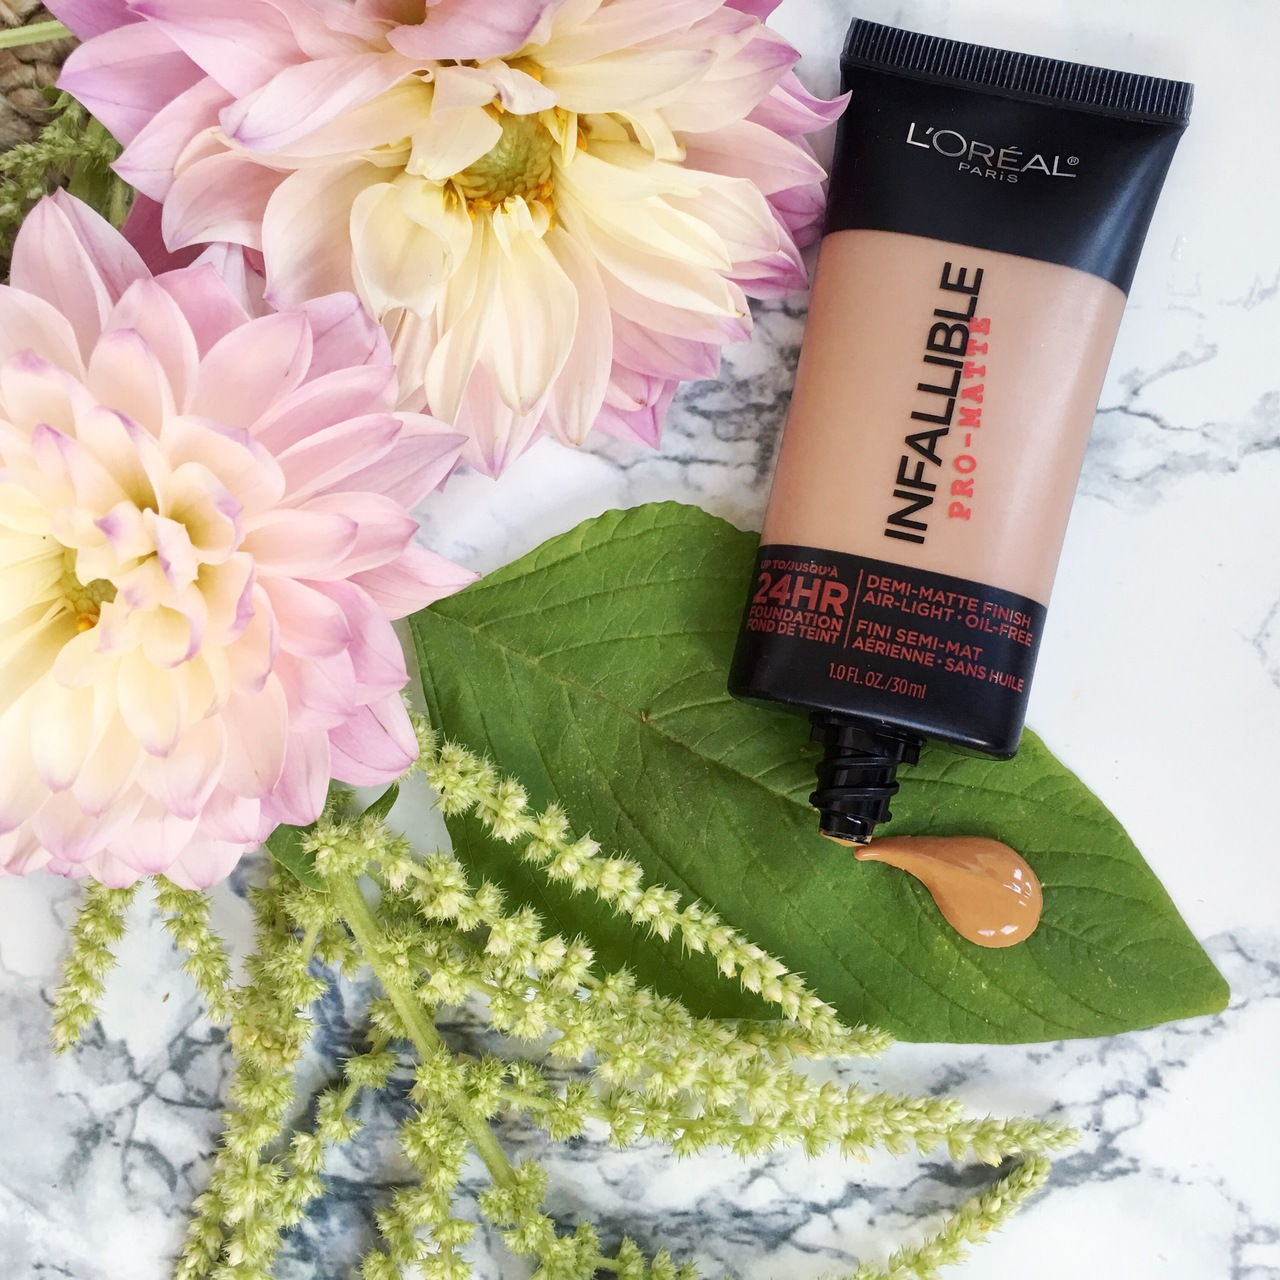 Foundation, infallible, and l'oreal paris image